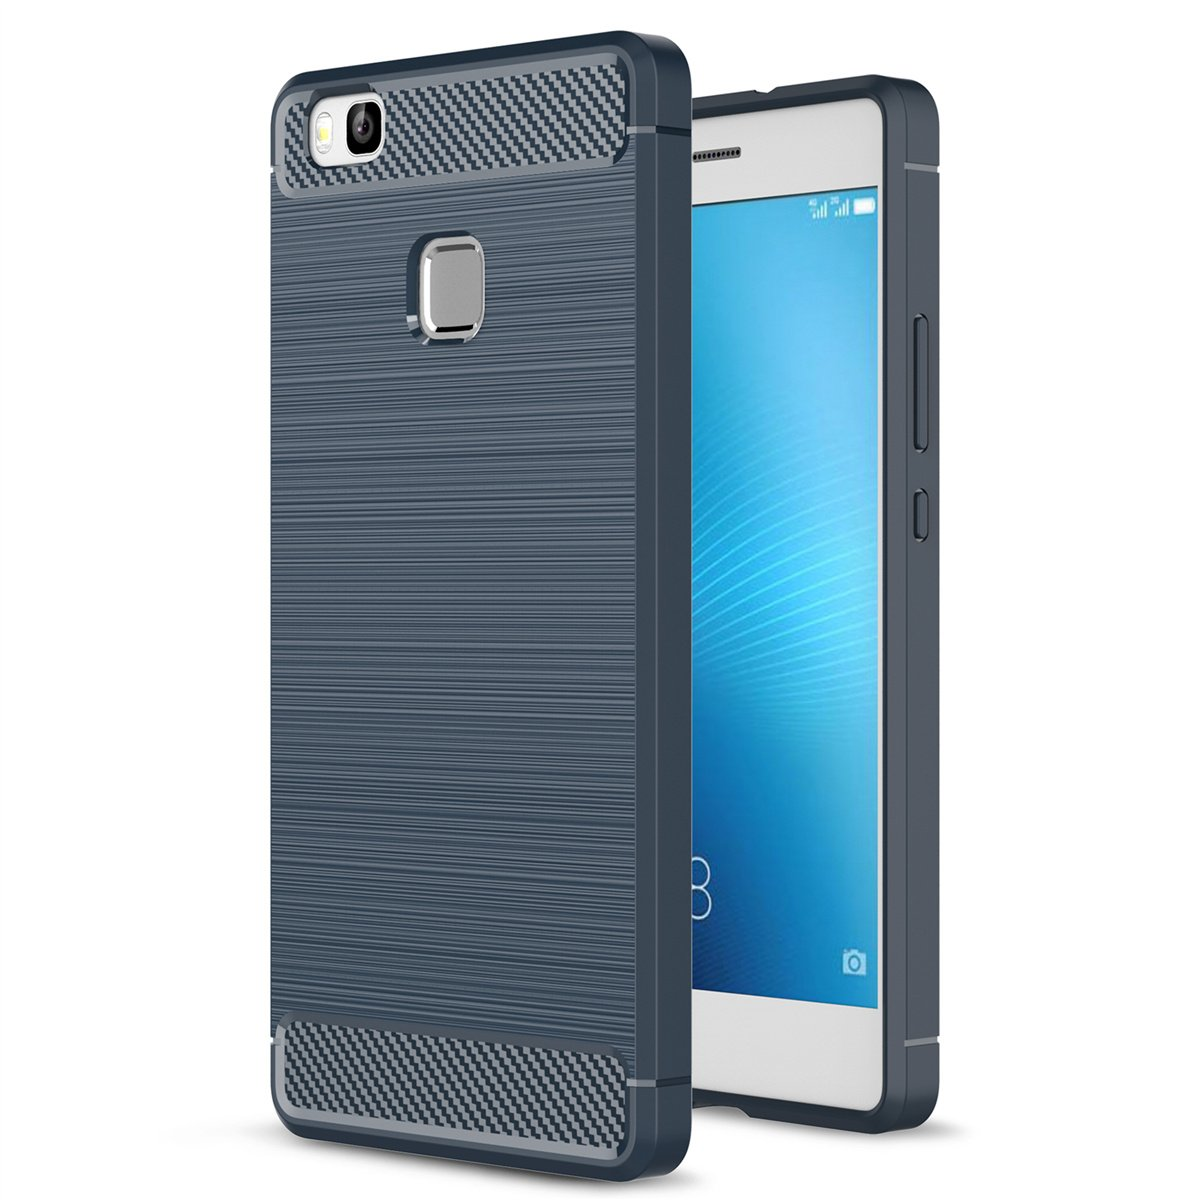 Huawei P9 Lite Case Landee Soft Tpu Shock Absorption Brushed Carbon Armor Hard Xiaomi Mi5s Mi 5s And Fiber Design Silicone For 52 Navy Blue Cell Phones